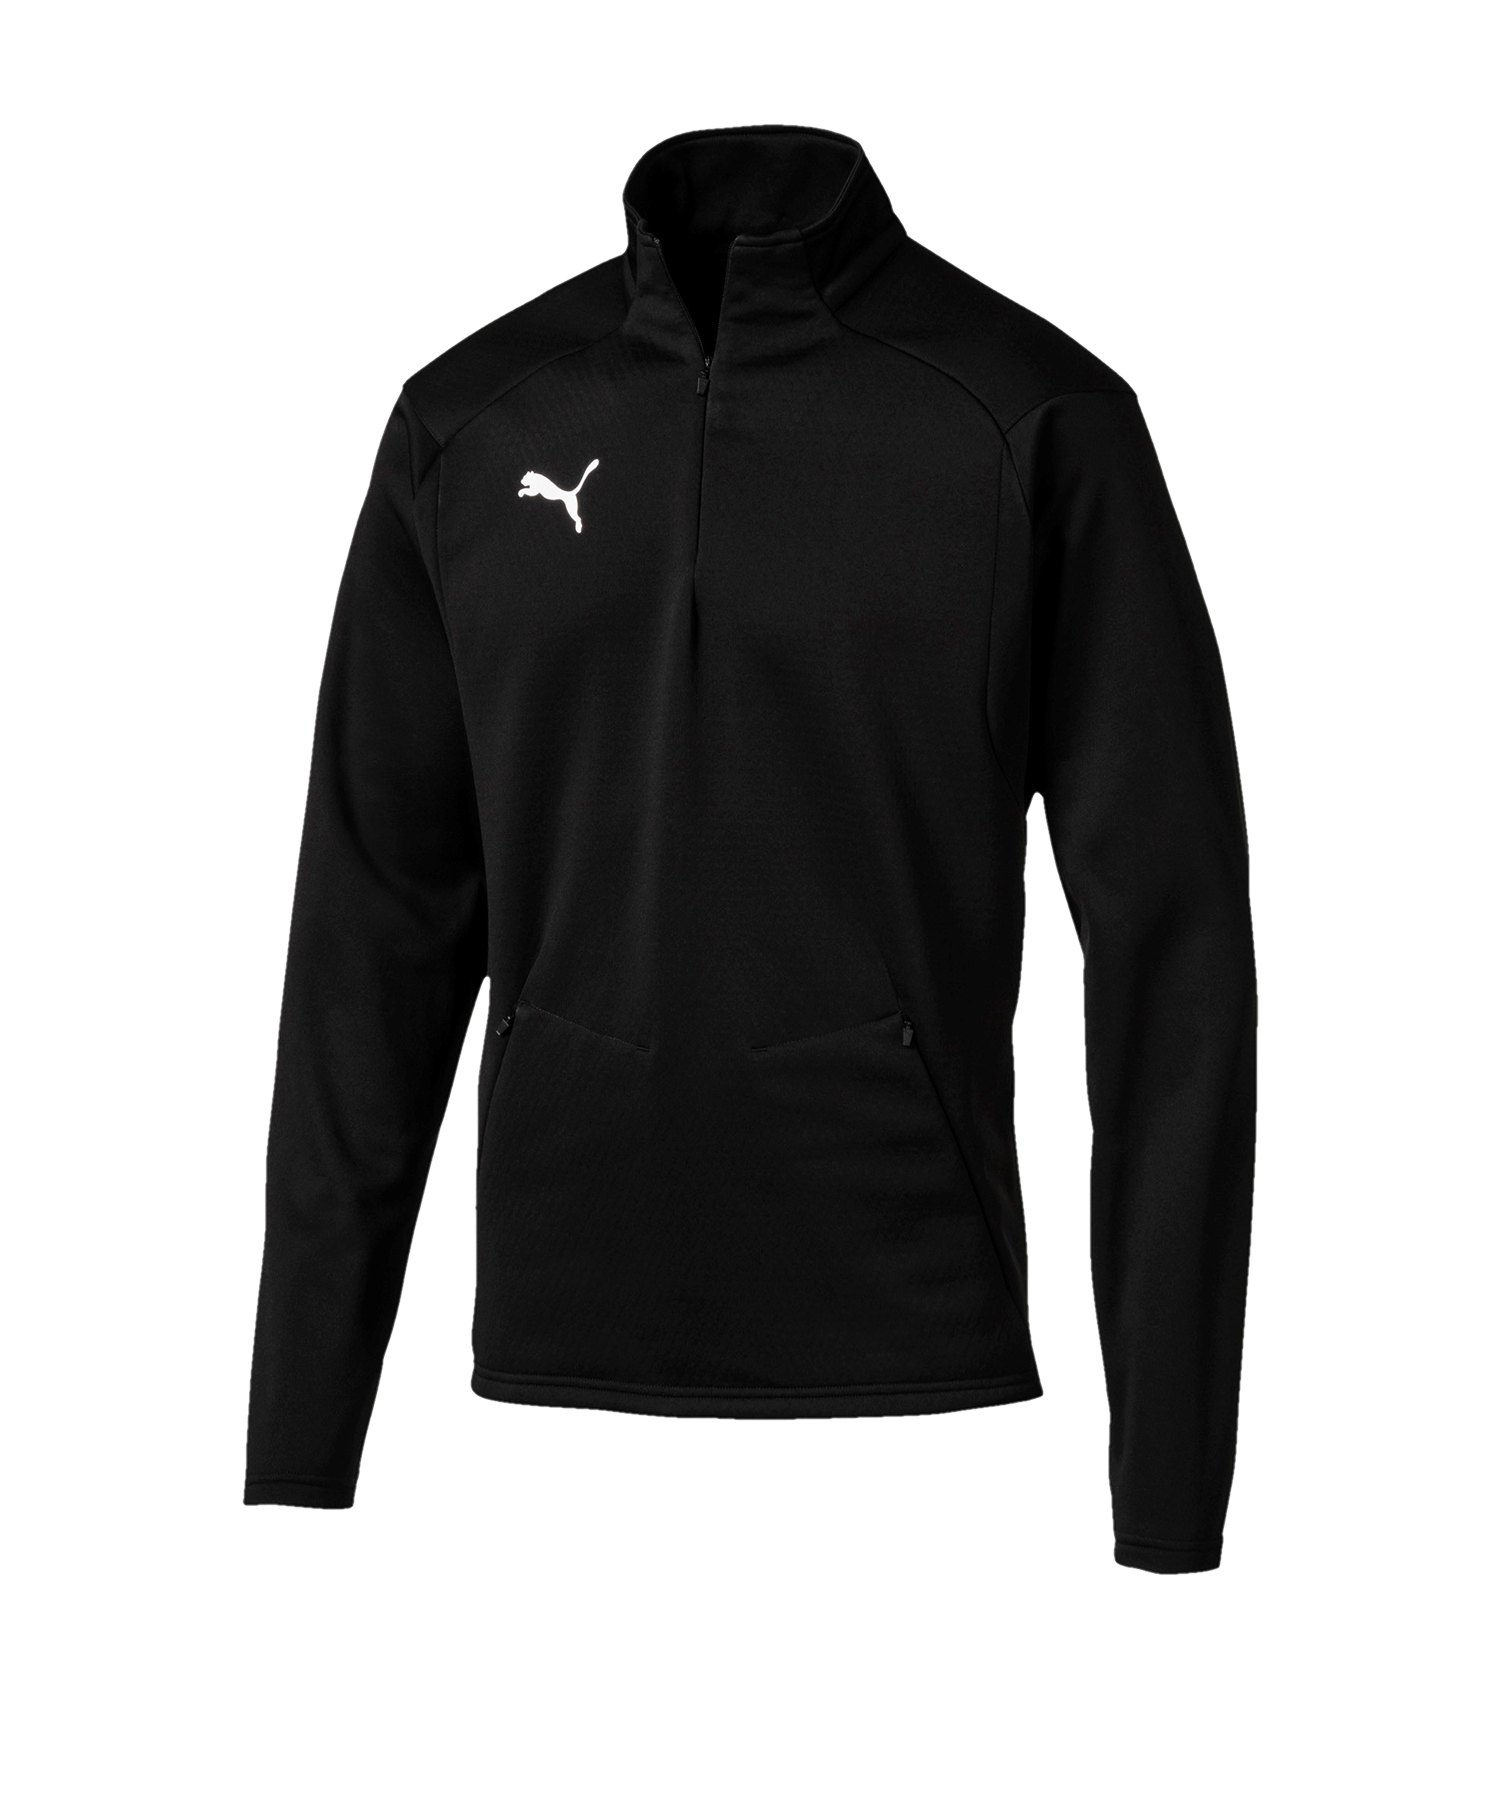 PUMA LIGA Training Fleece Sweatshirt Schwarz F03 - schwarz